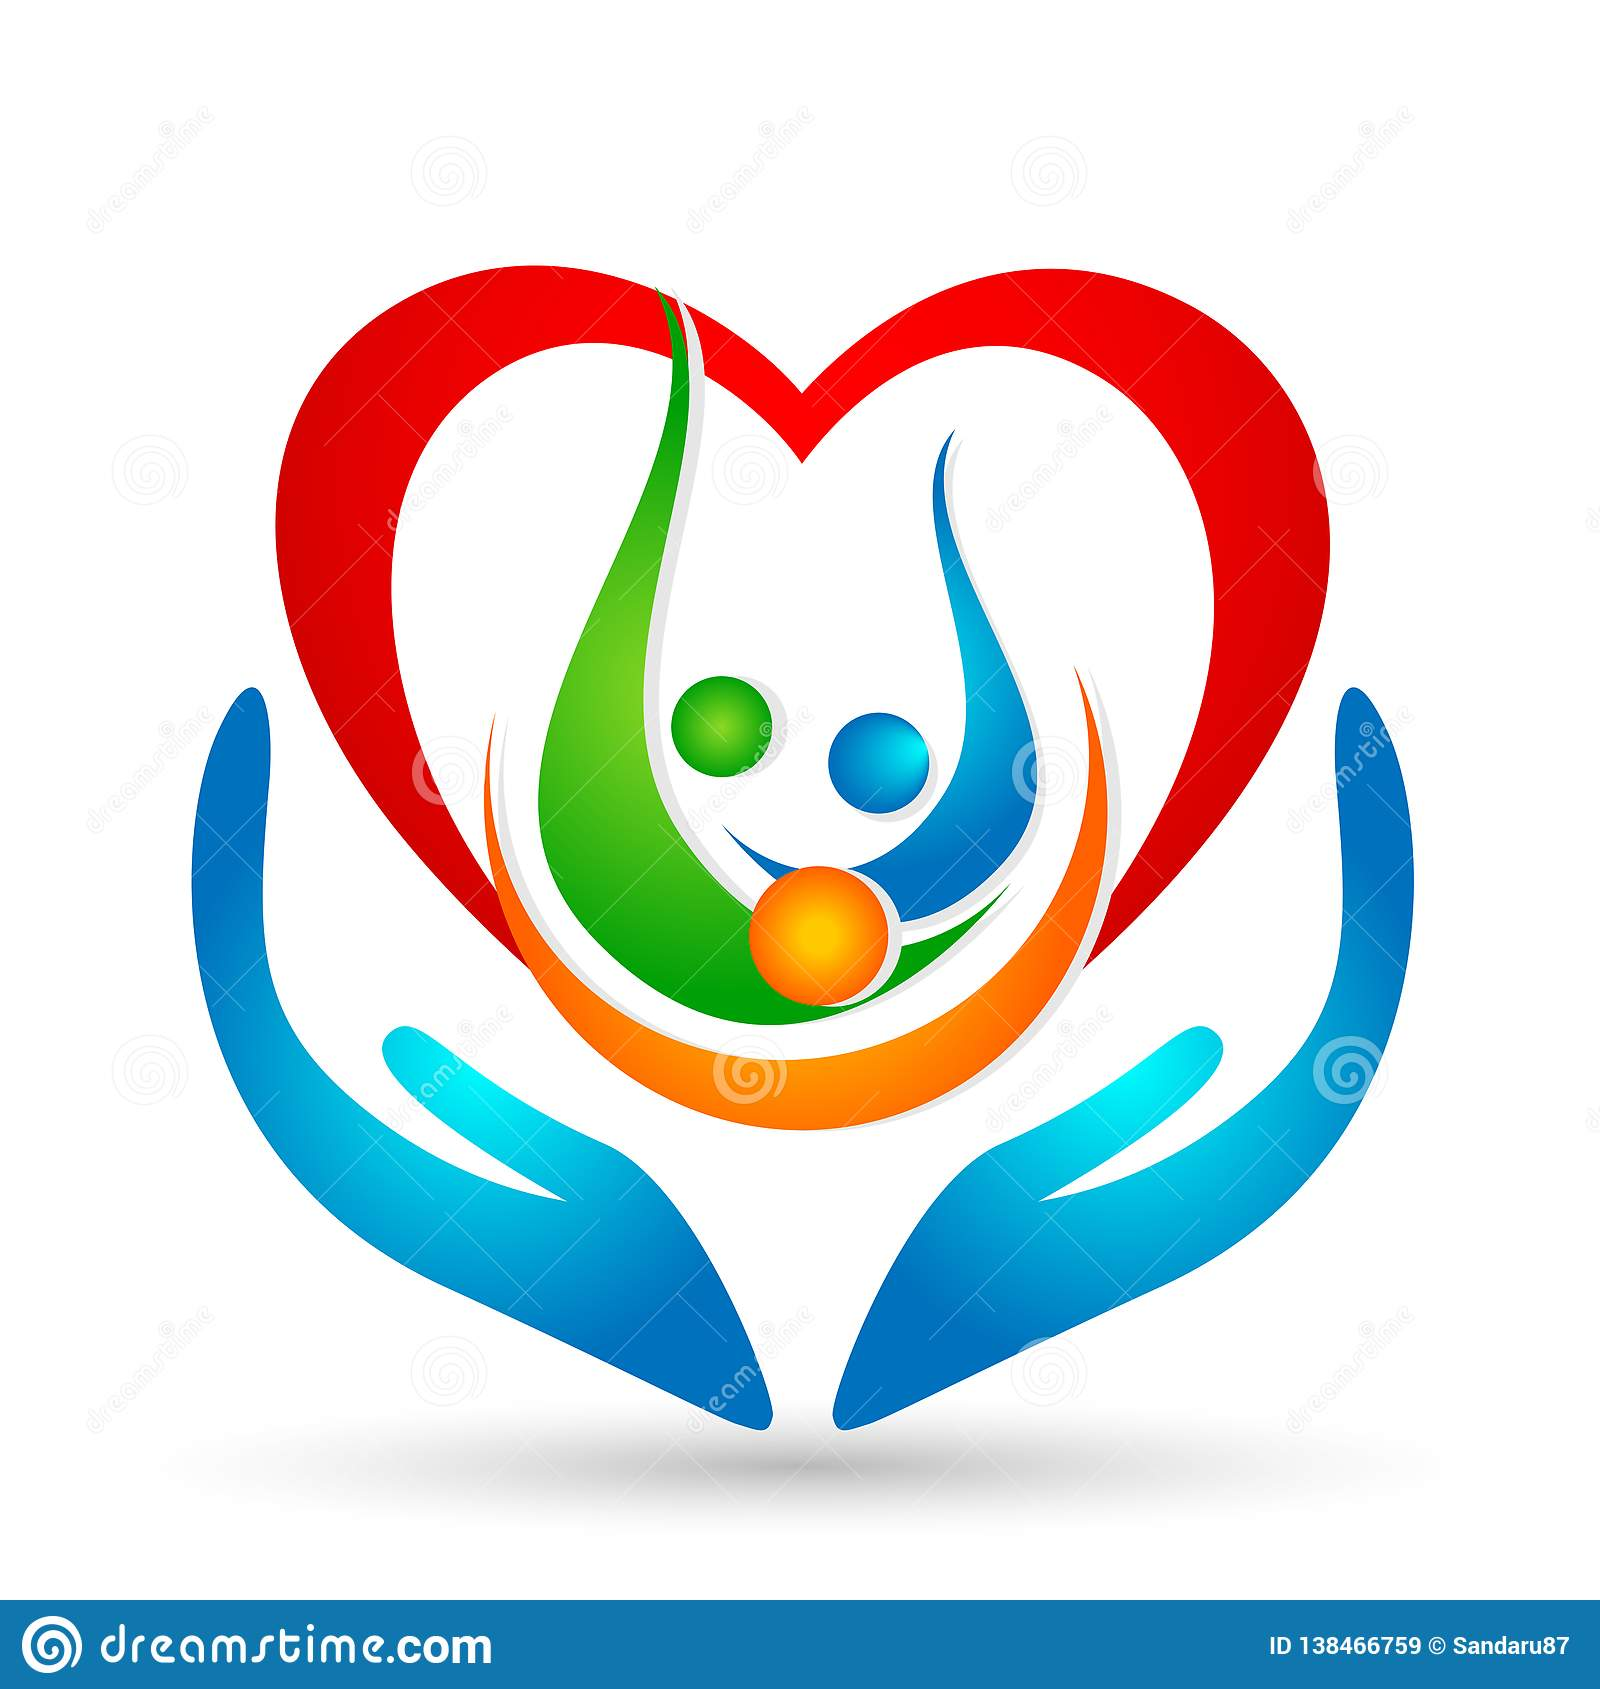 Family union,love and care in a red heart with hand and heart shape logo icon vector element on white background